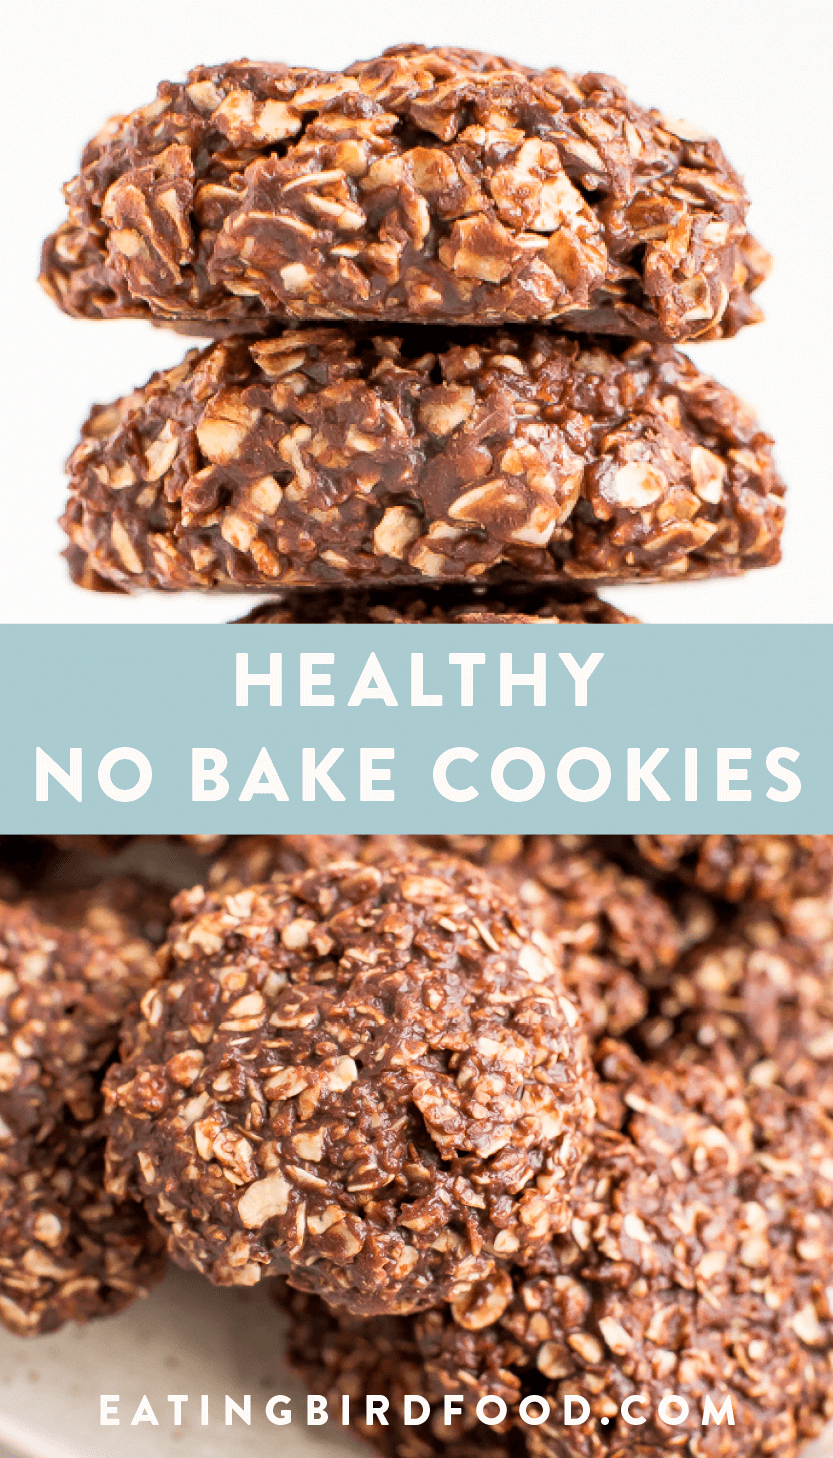 Peanut butter chocolate healthy no bake cookies made with half the amount of sugar in traditional no bake cookies and coconut oil instead of butter. Dairy-free, vegan and refined sugar free. butter chocolate healthy no bake cookies made with half the amount of sugar in traditional no bake cookies and coconut oil instead of butter. Dairy-free, vegan and refined sugar free.#vegan